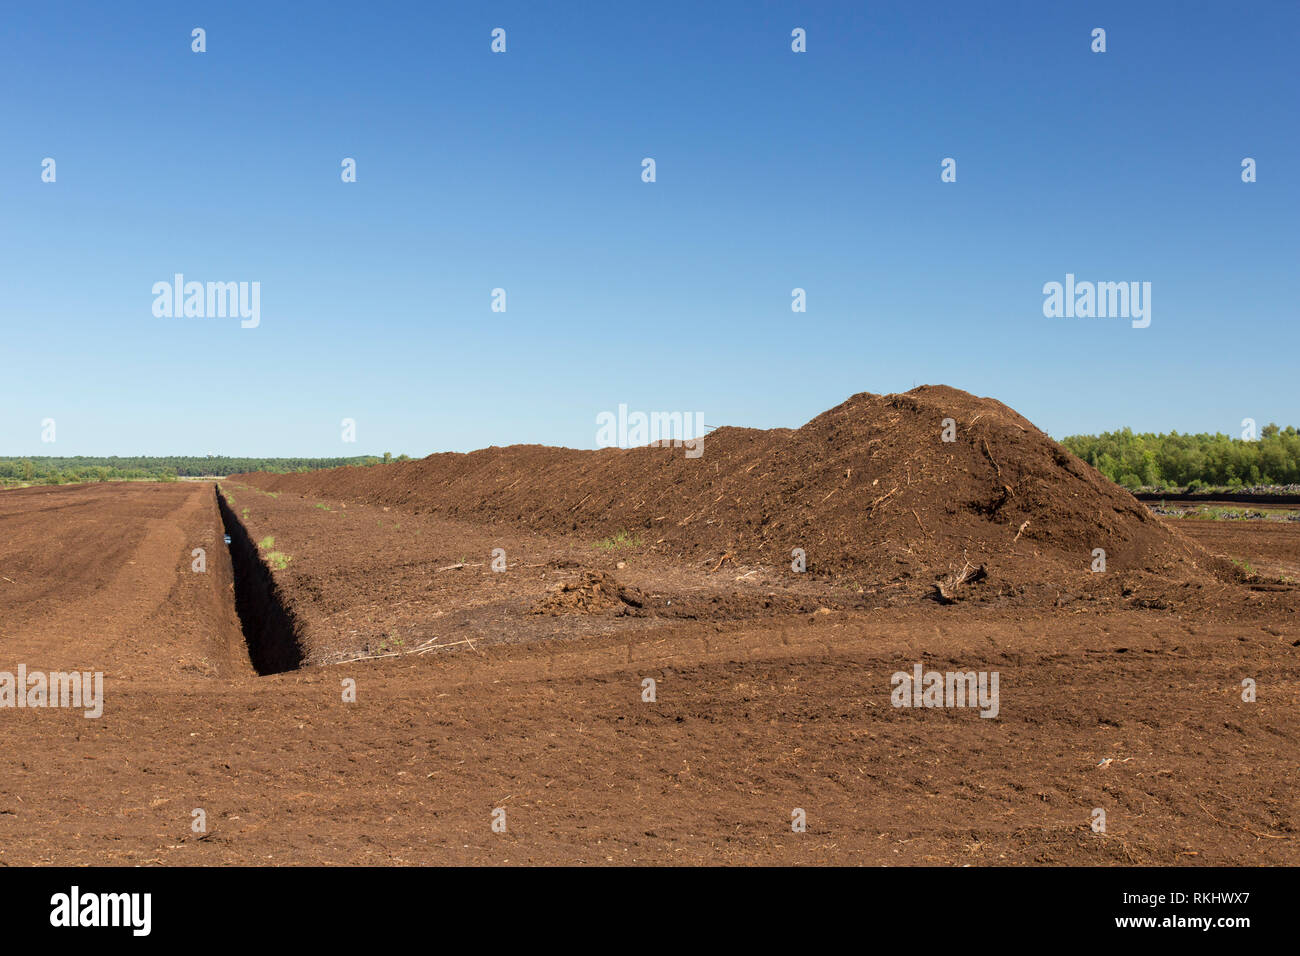 Peat extraction at Totes Moor / Tote Moor, raised bog near Neustadt am Rübenberge, district of Hannover, Lower Saxony / Niedersachsen, Germany - Stock Image